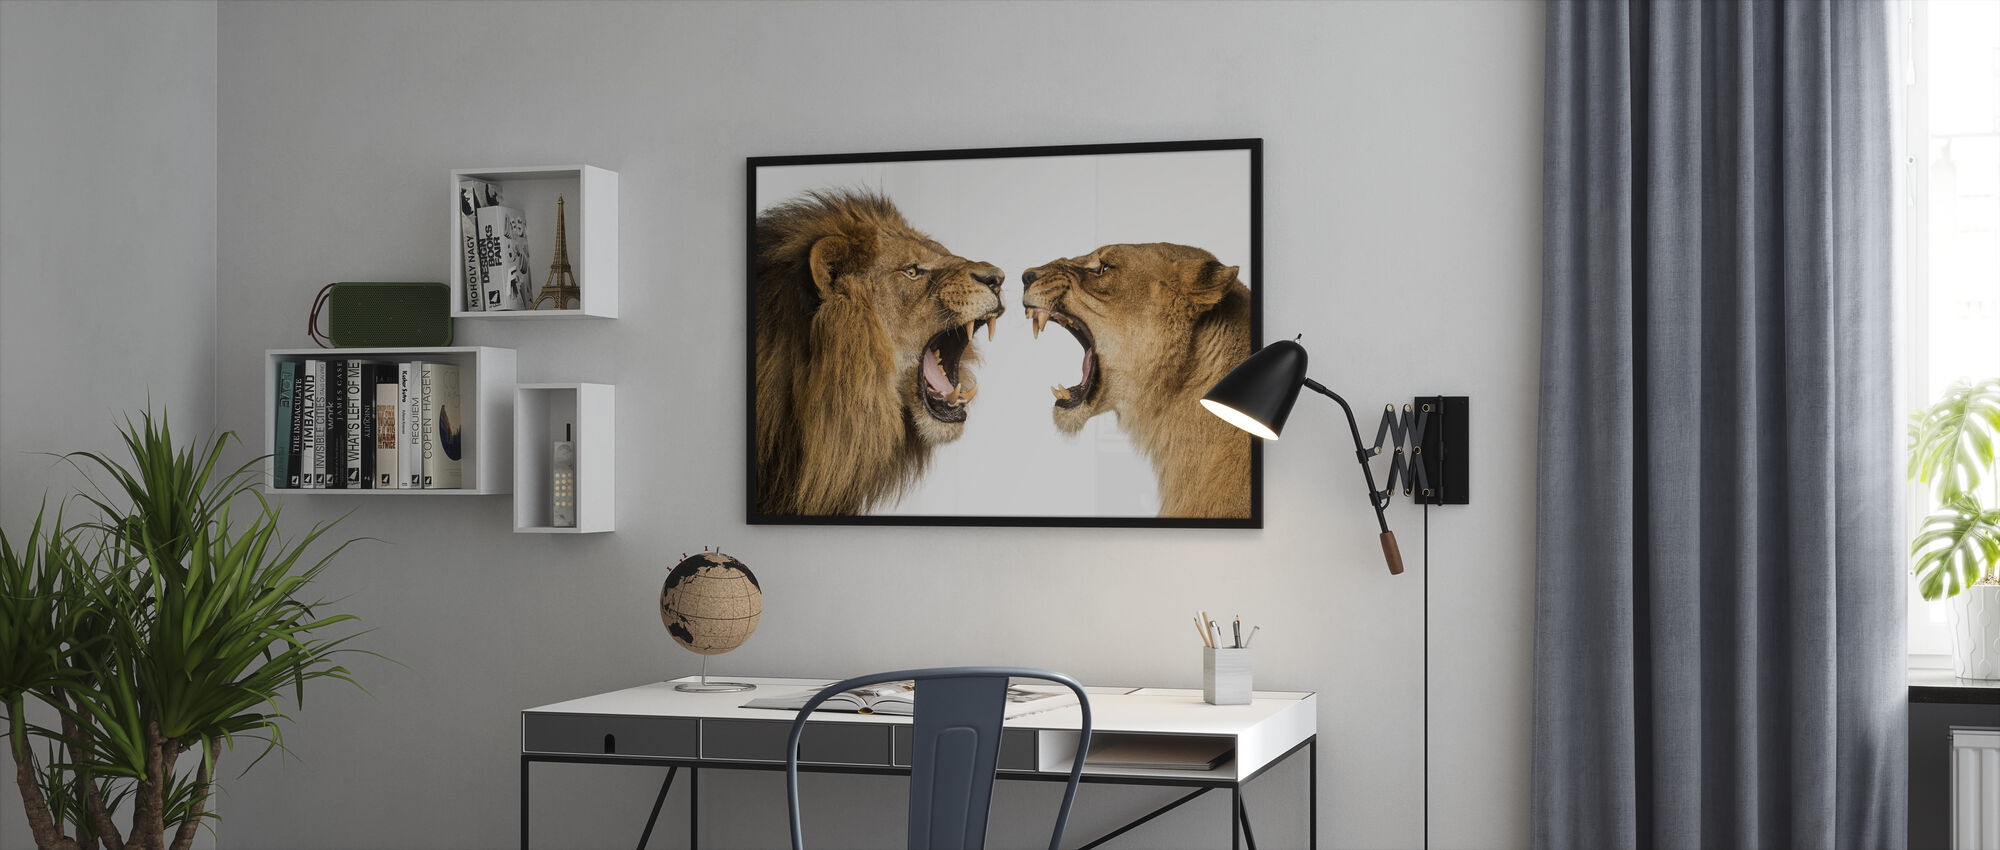 Roaring Lion and Lioness - Framed print - Office